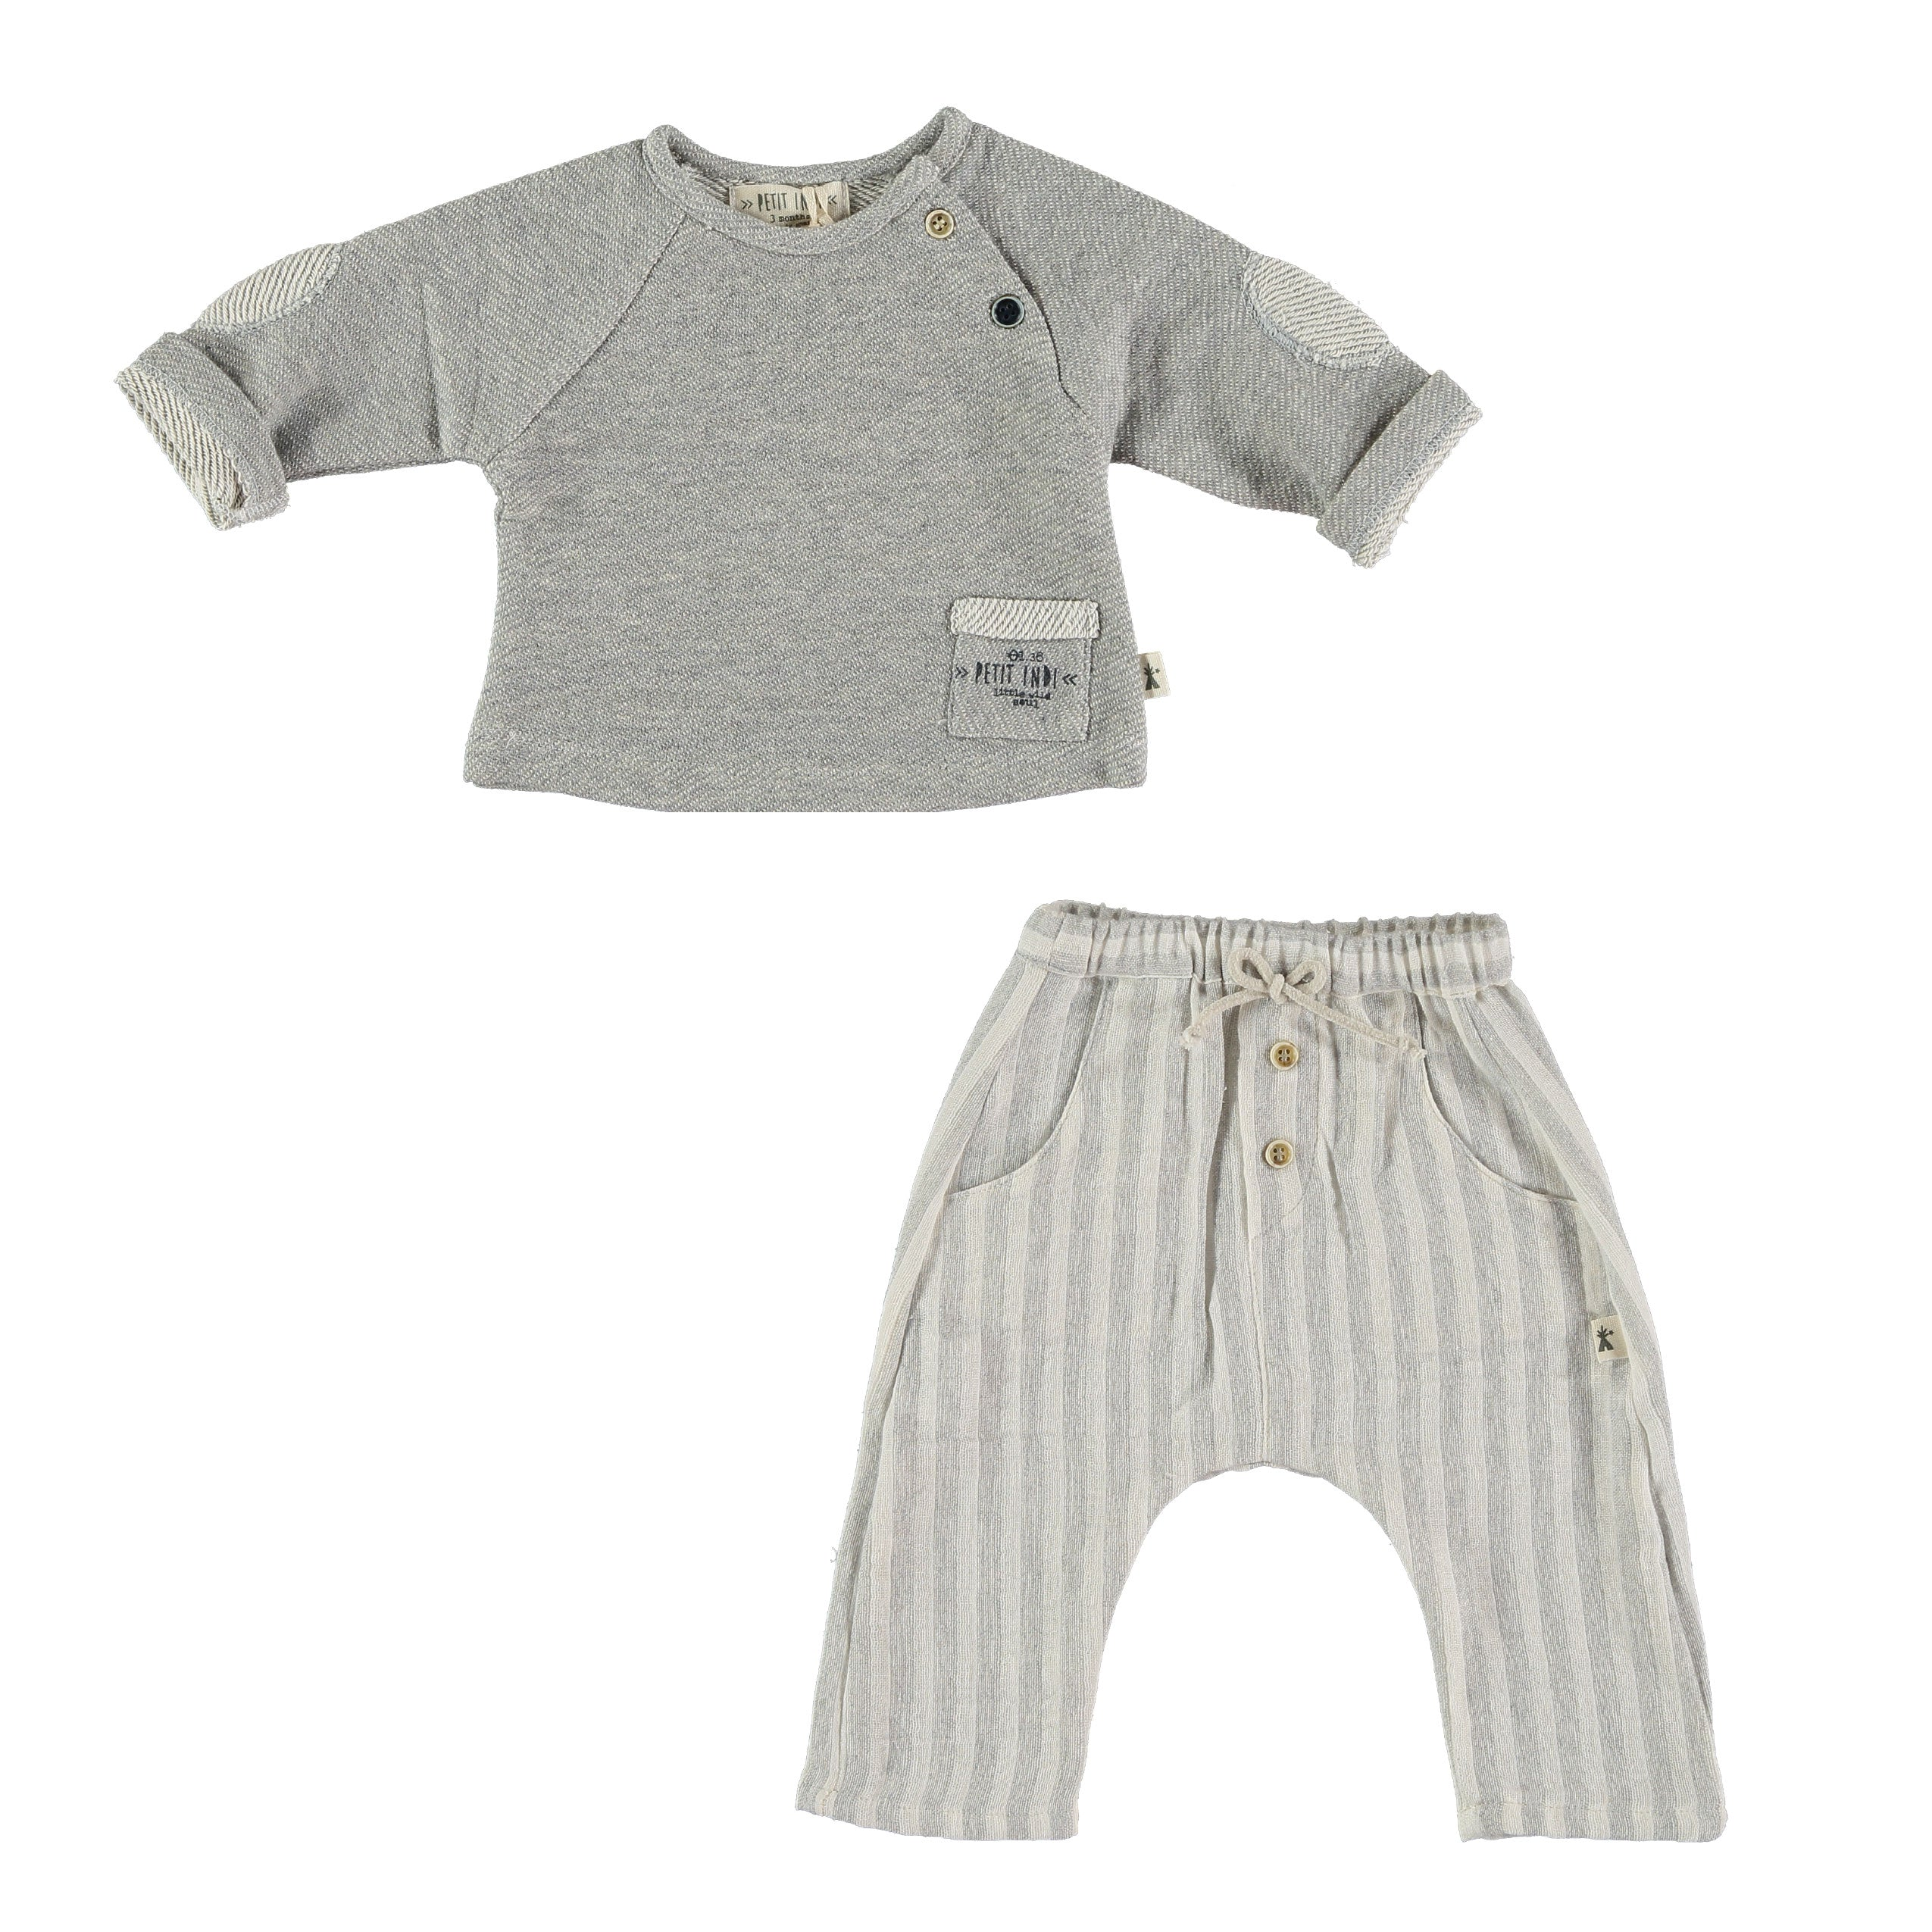 Baby Sweater with elbow patches and slouchy pants set by Petit Indi at Bonjour Baby Baskets, great addition to your BYOB (Build Your Own Basket)